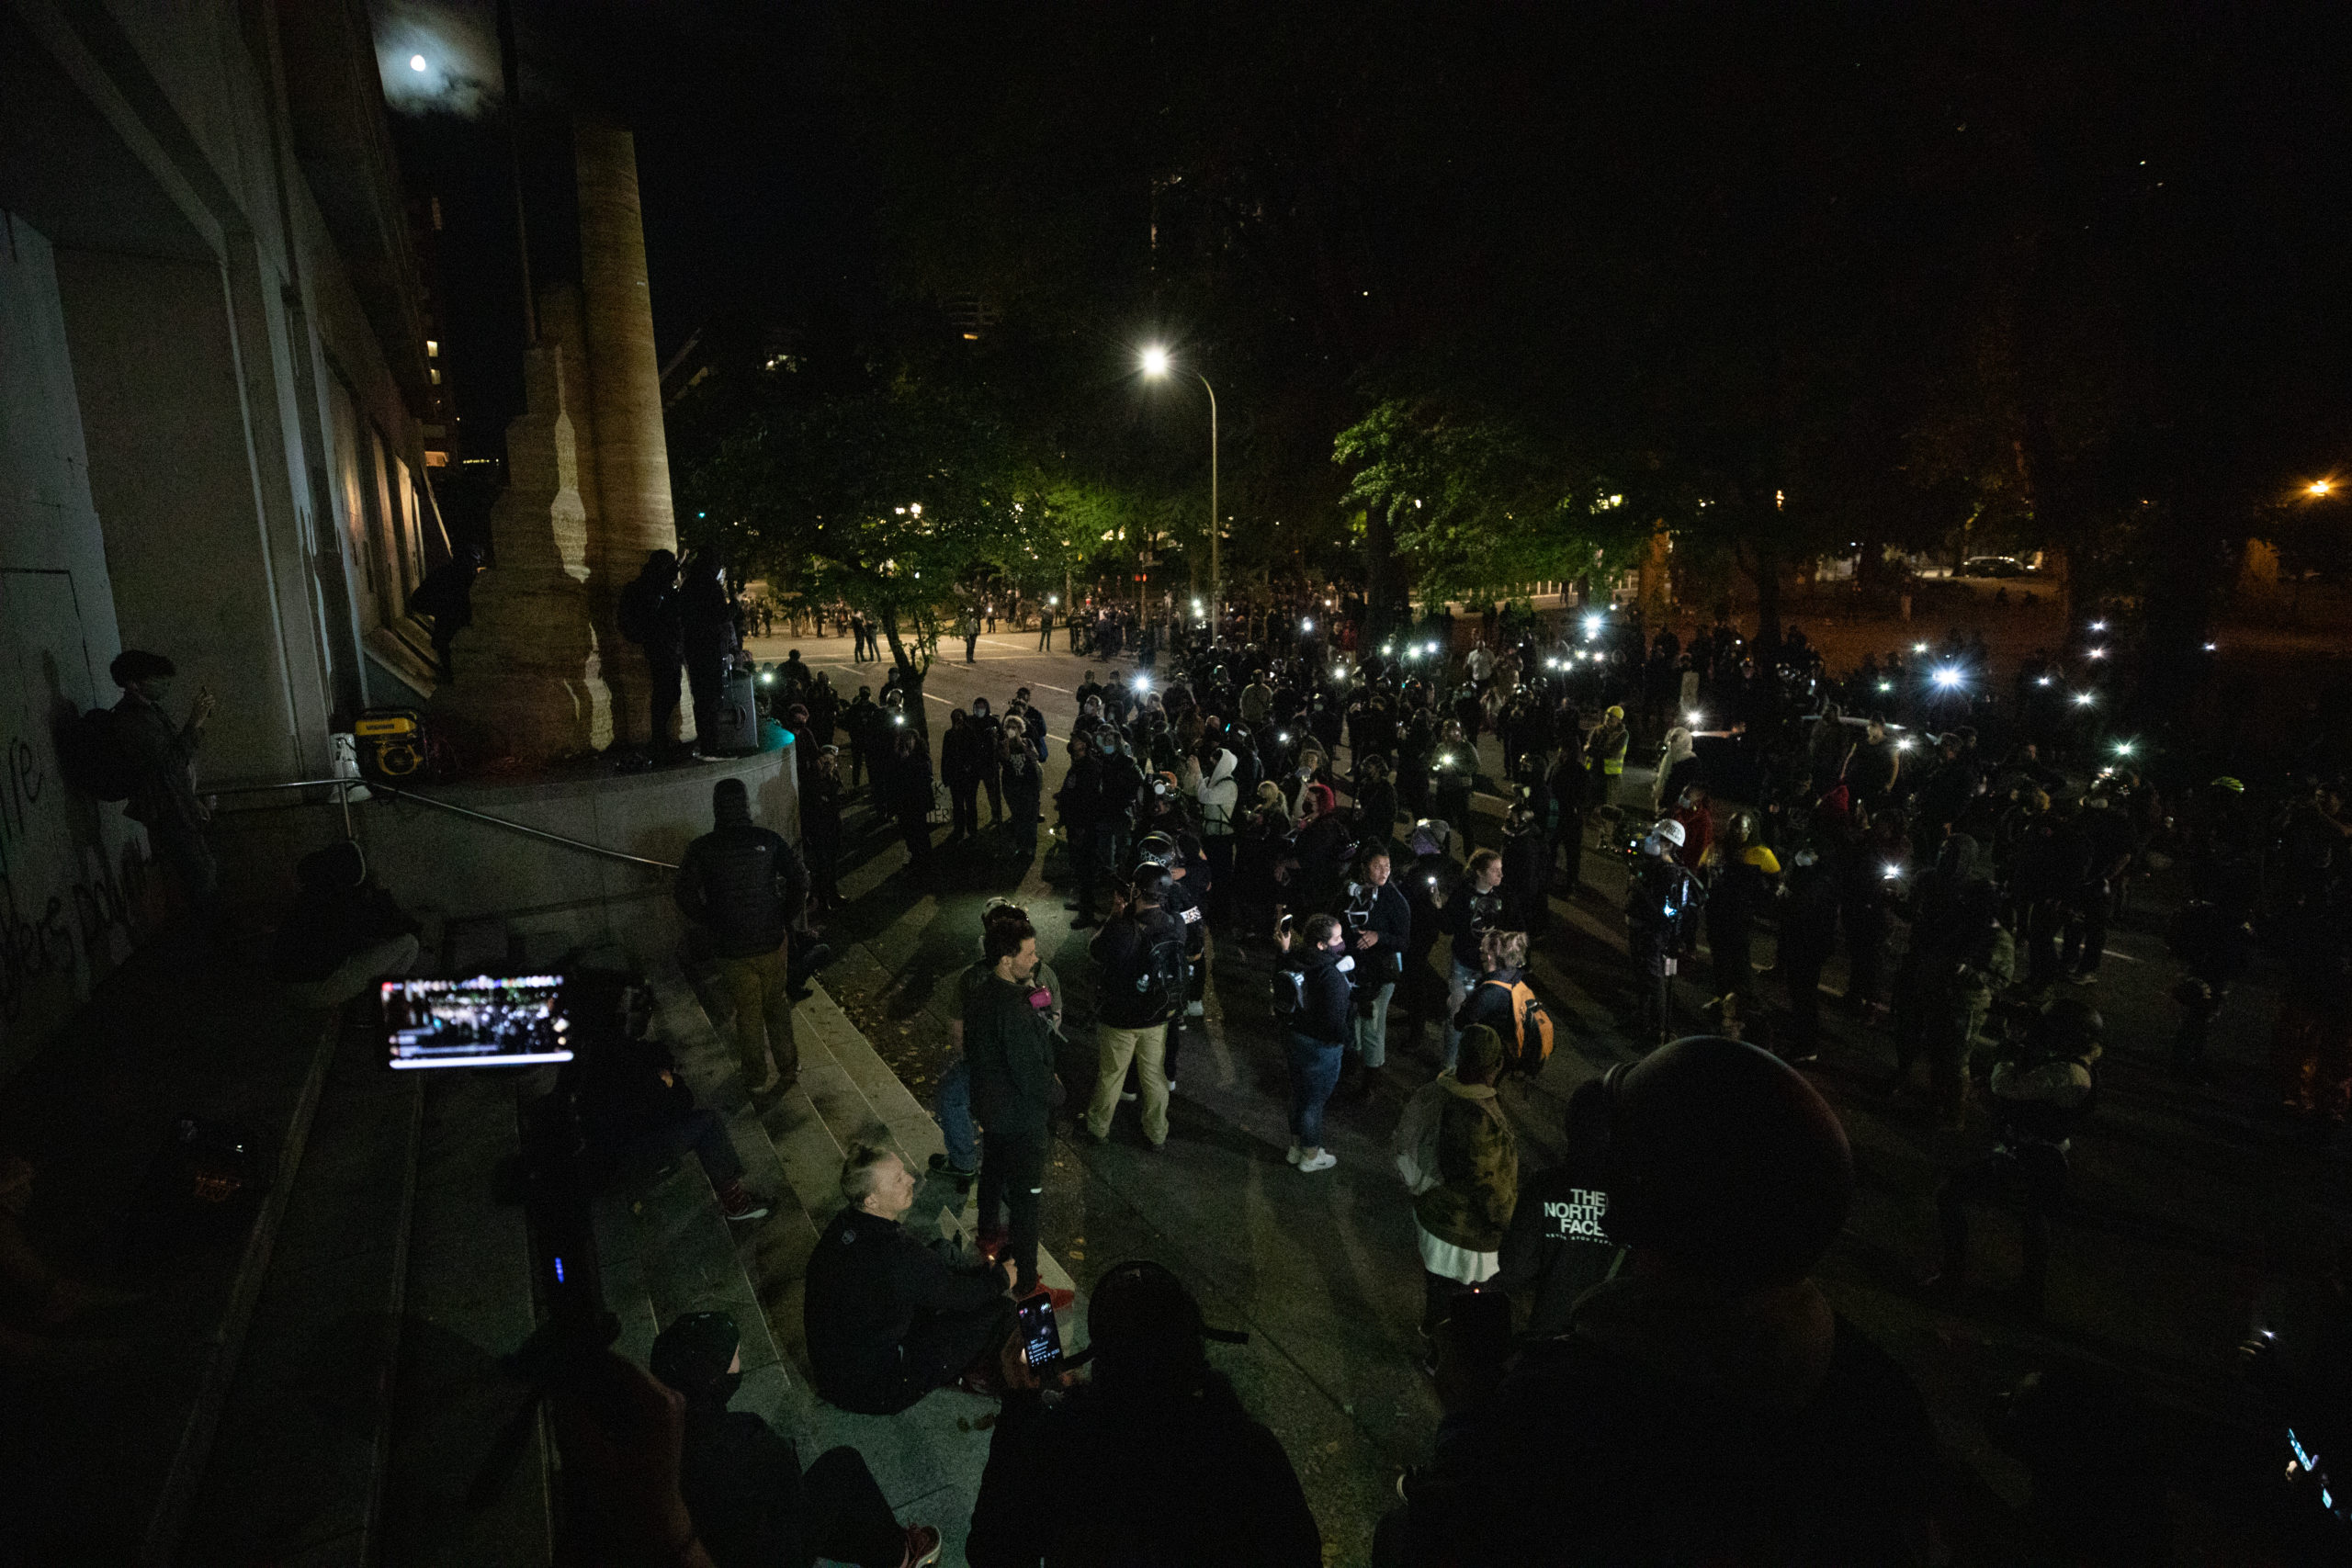 Protesters gather outside the Portland Police Bureau building on Sept. 26, 2020. (Photo: Kaylee Greenlee / DCNF)